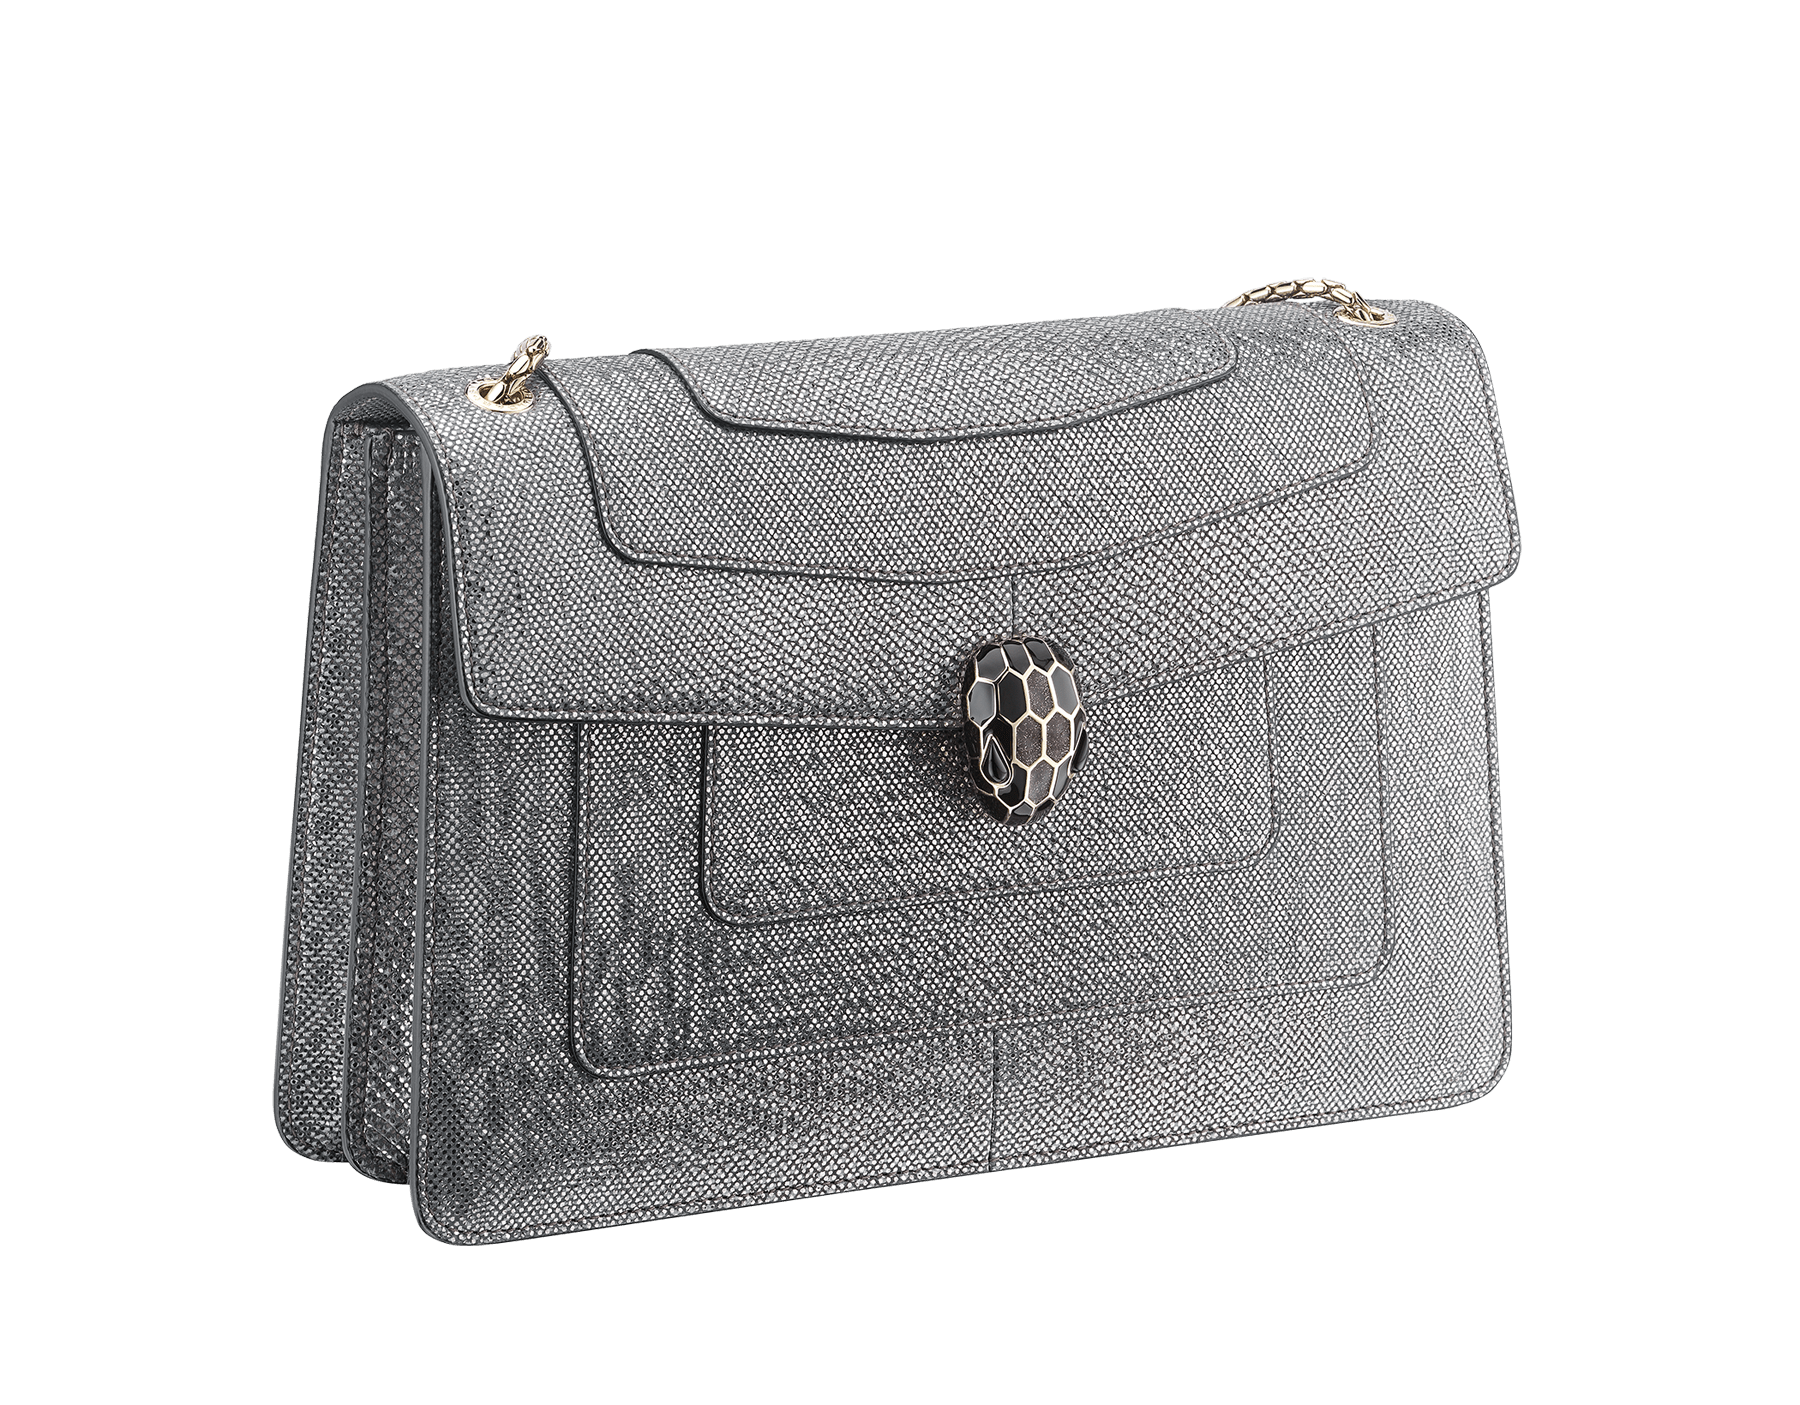 Flap cover bag Serpenti Forever in metallic silver karung skin. Brass light gold plated tempting snake head closure in shiny black and glitter silver enamel, with eyes in black onyx.  521-MK image 2